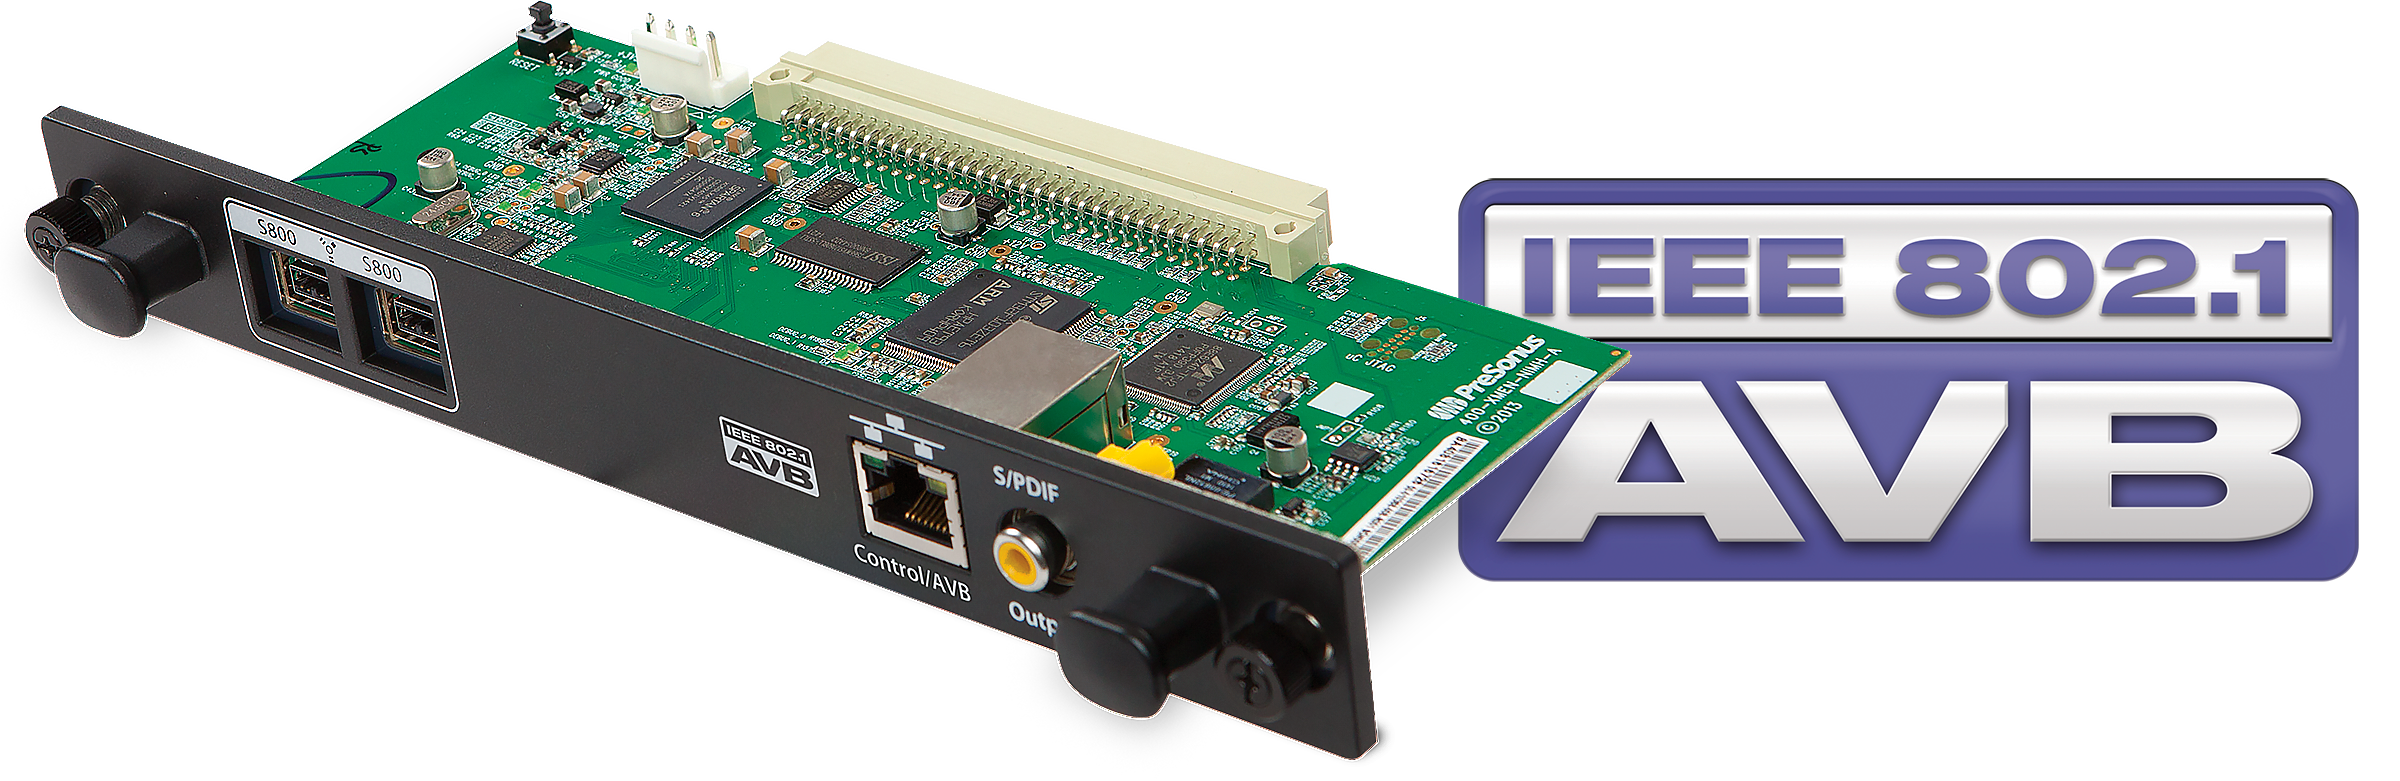 ships avb networking for studiolive active integration presonusreg is now shipping its sl avb mix audio video bridging avb audio networking option card for studiolive ai series console and studiolive rm series